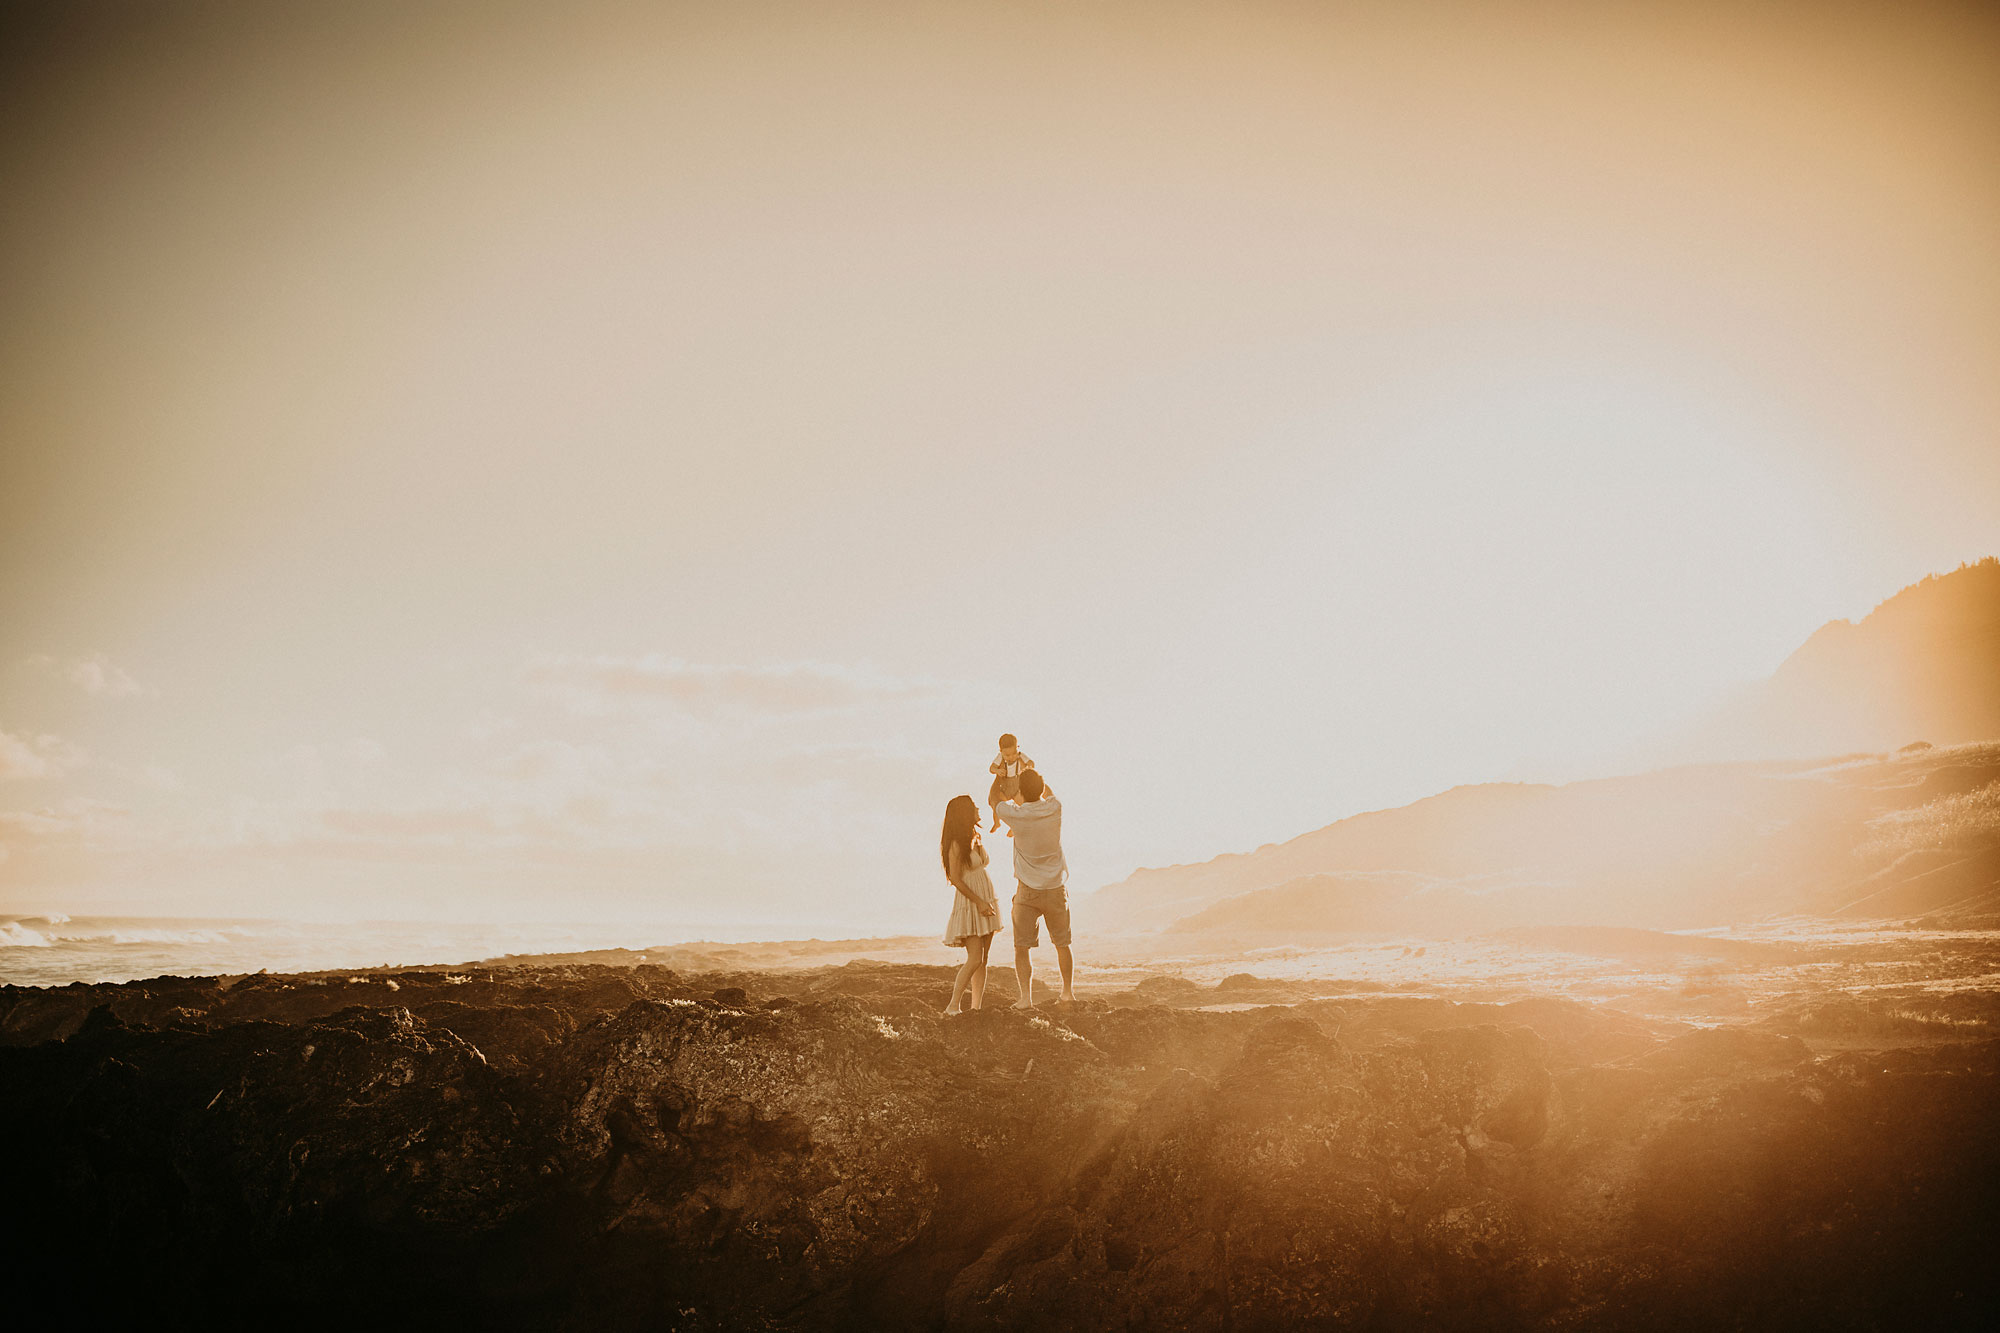 Kaena-Point-Sunrise-Family-Photographer-Hawaii-14.jpg